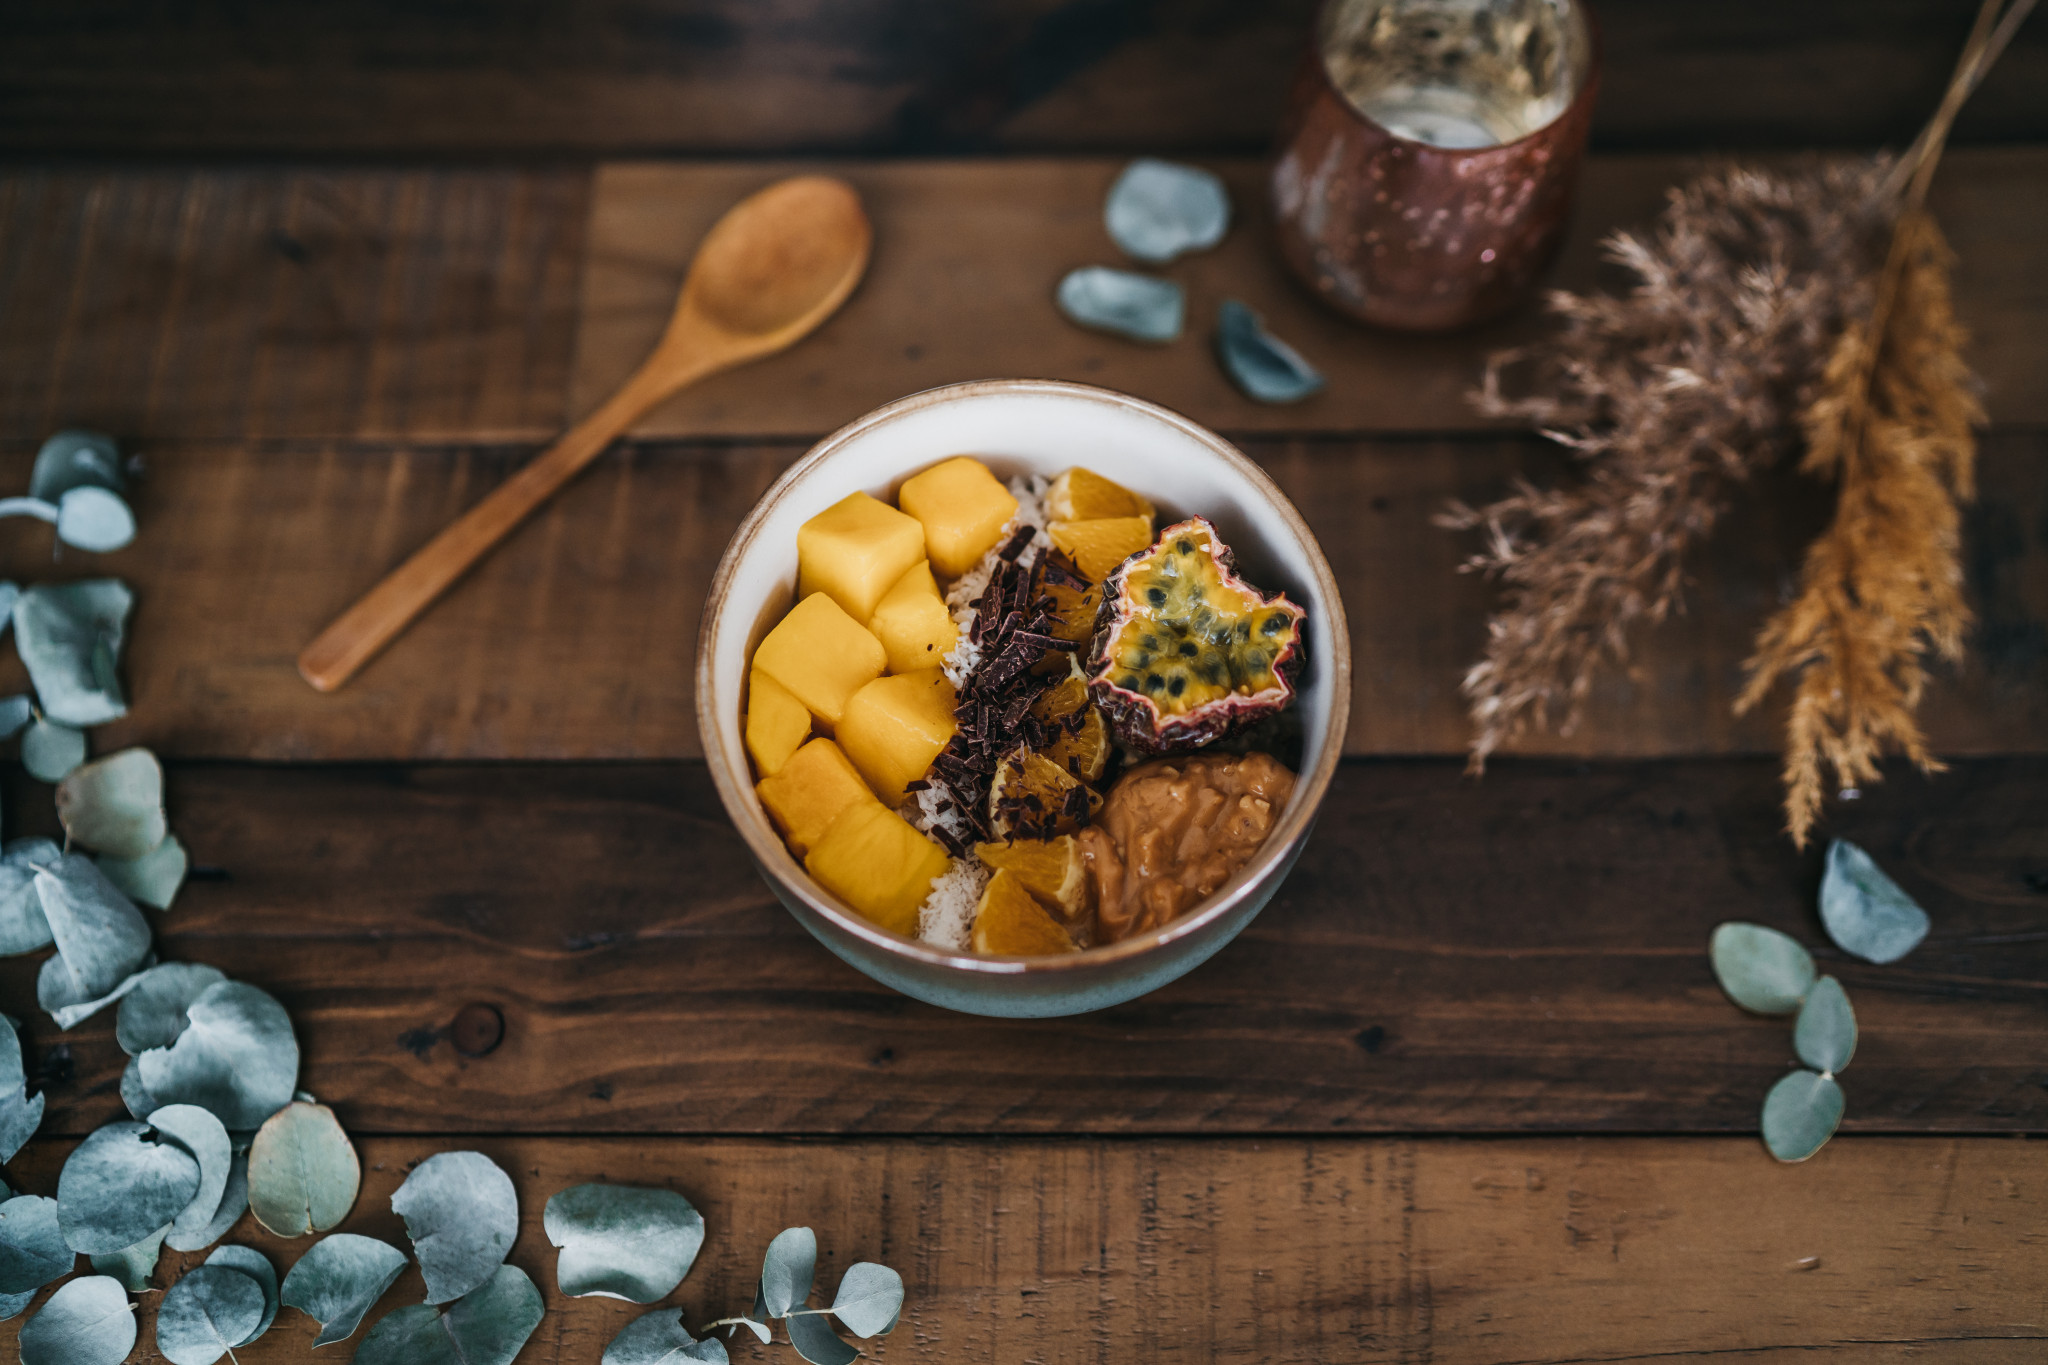 Vegane Food-Inspiration #2: Tropical Porridge-Bowl